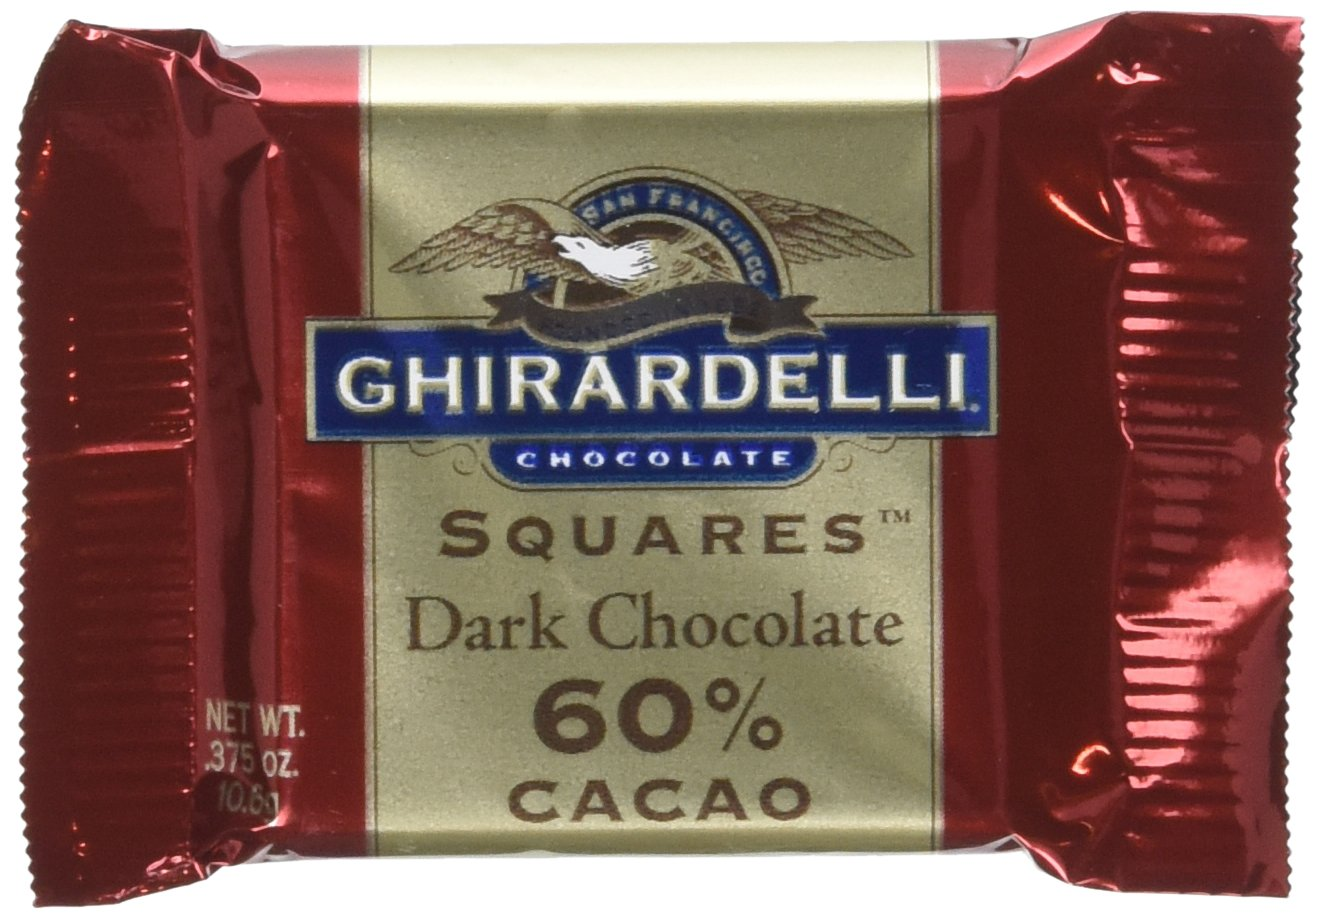 Ghirardelli Chocolate Squares, 60% Cacao Dark Chocolate, 0.375-Ounce Squares (Pack of 540)